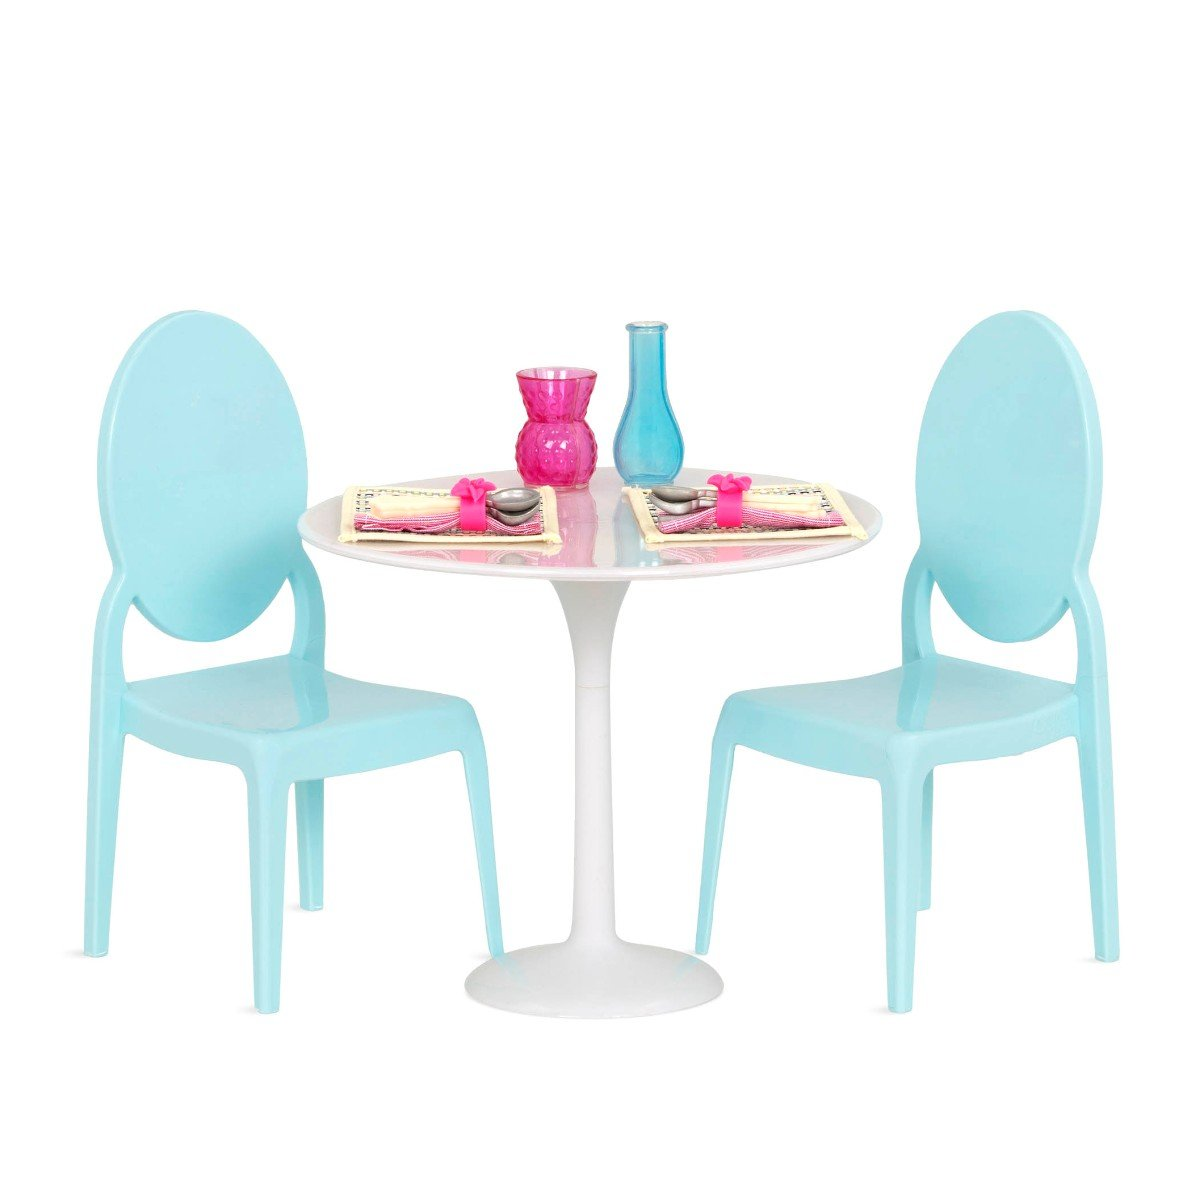 Our Generation - Table for Two (737898)